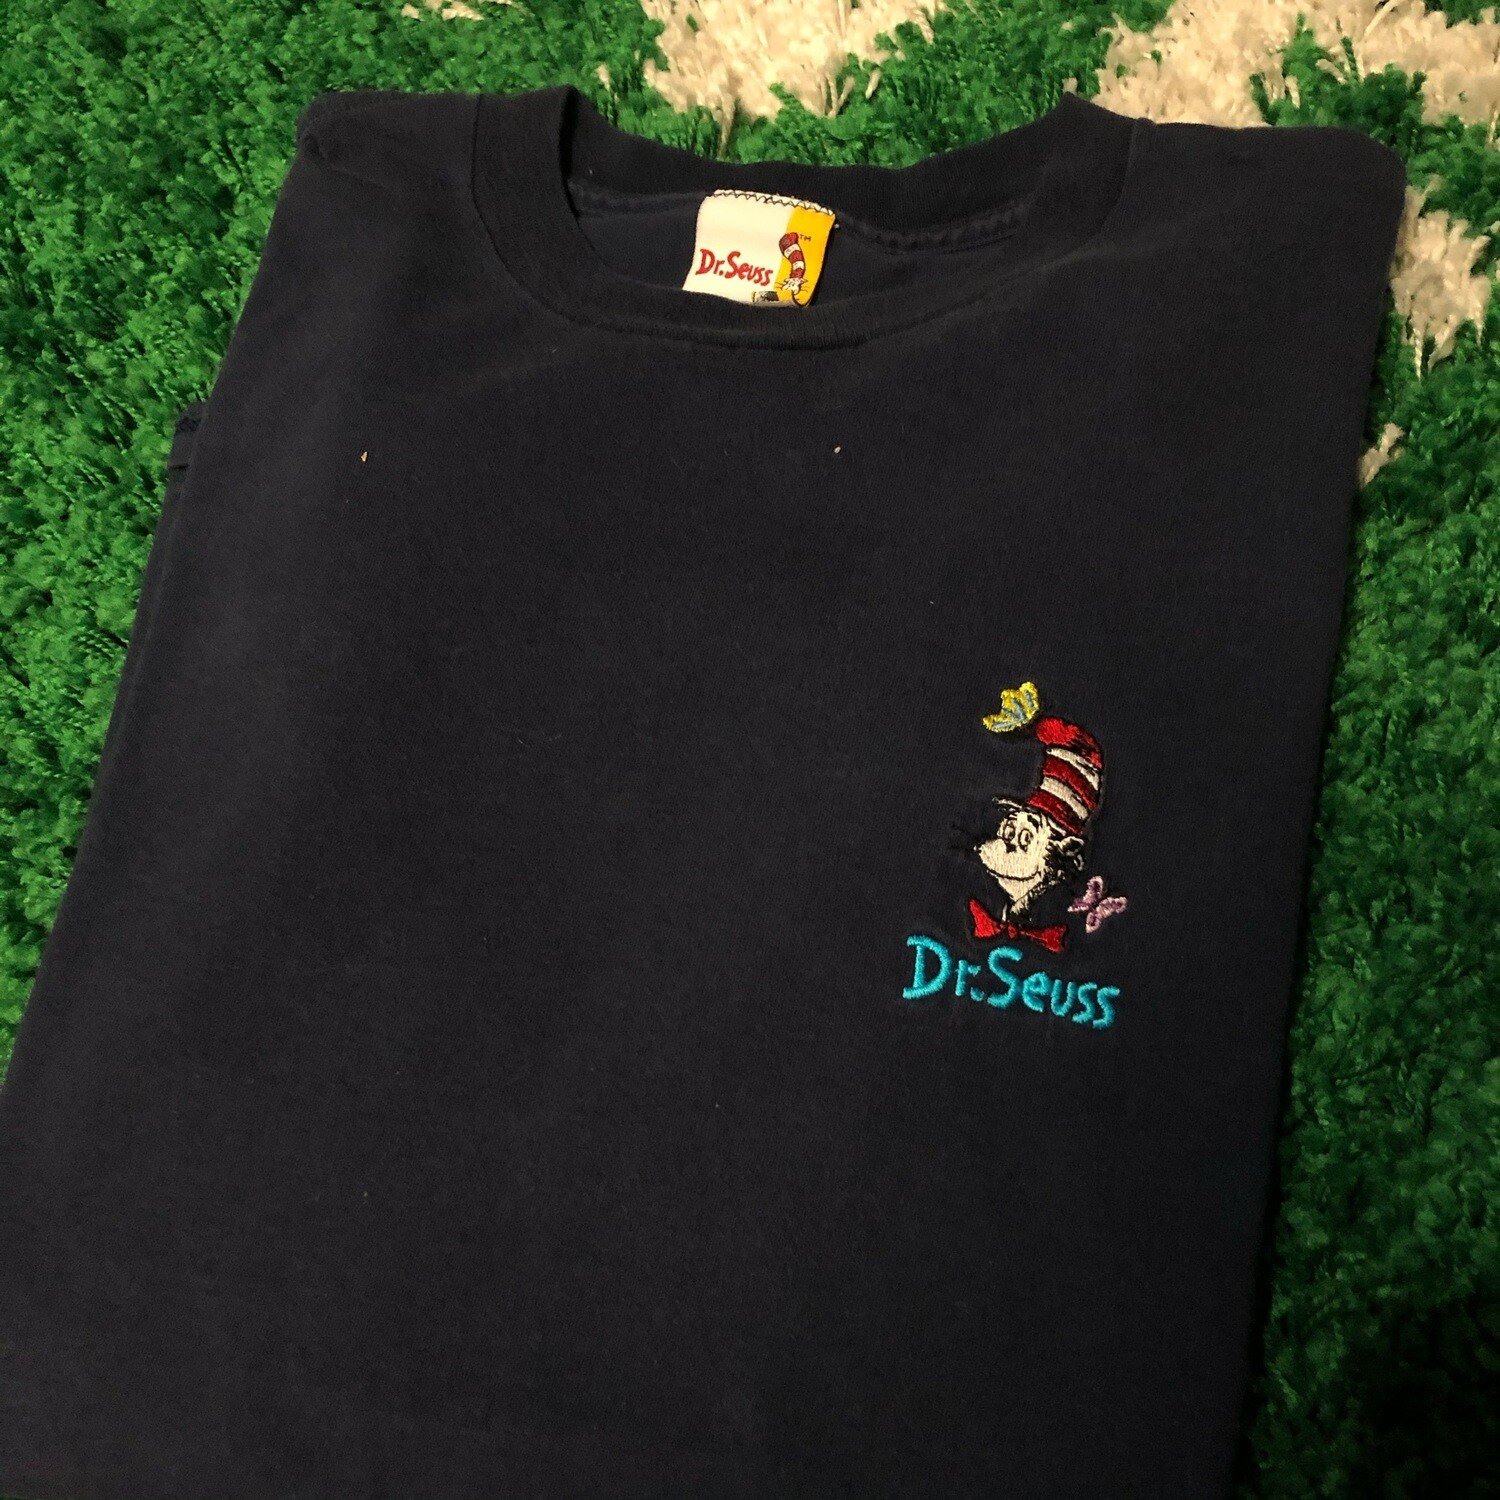 Dr. Seuss Stitched Tee Size Large